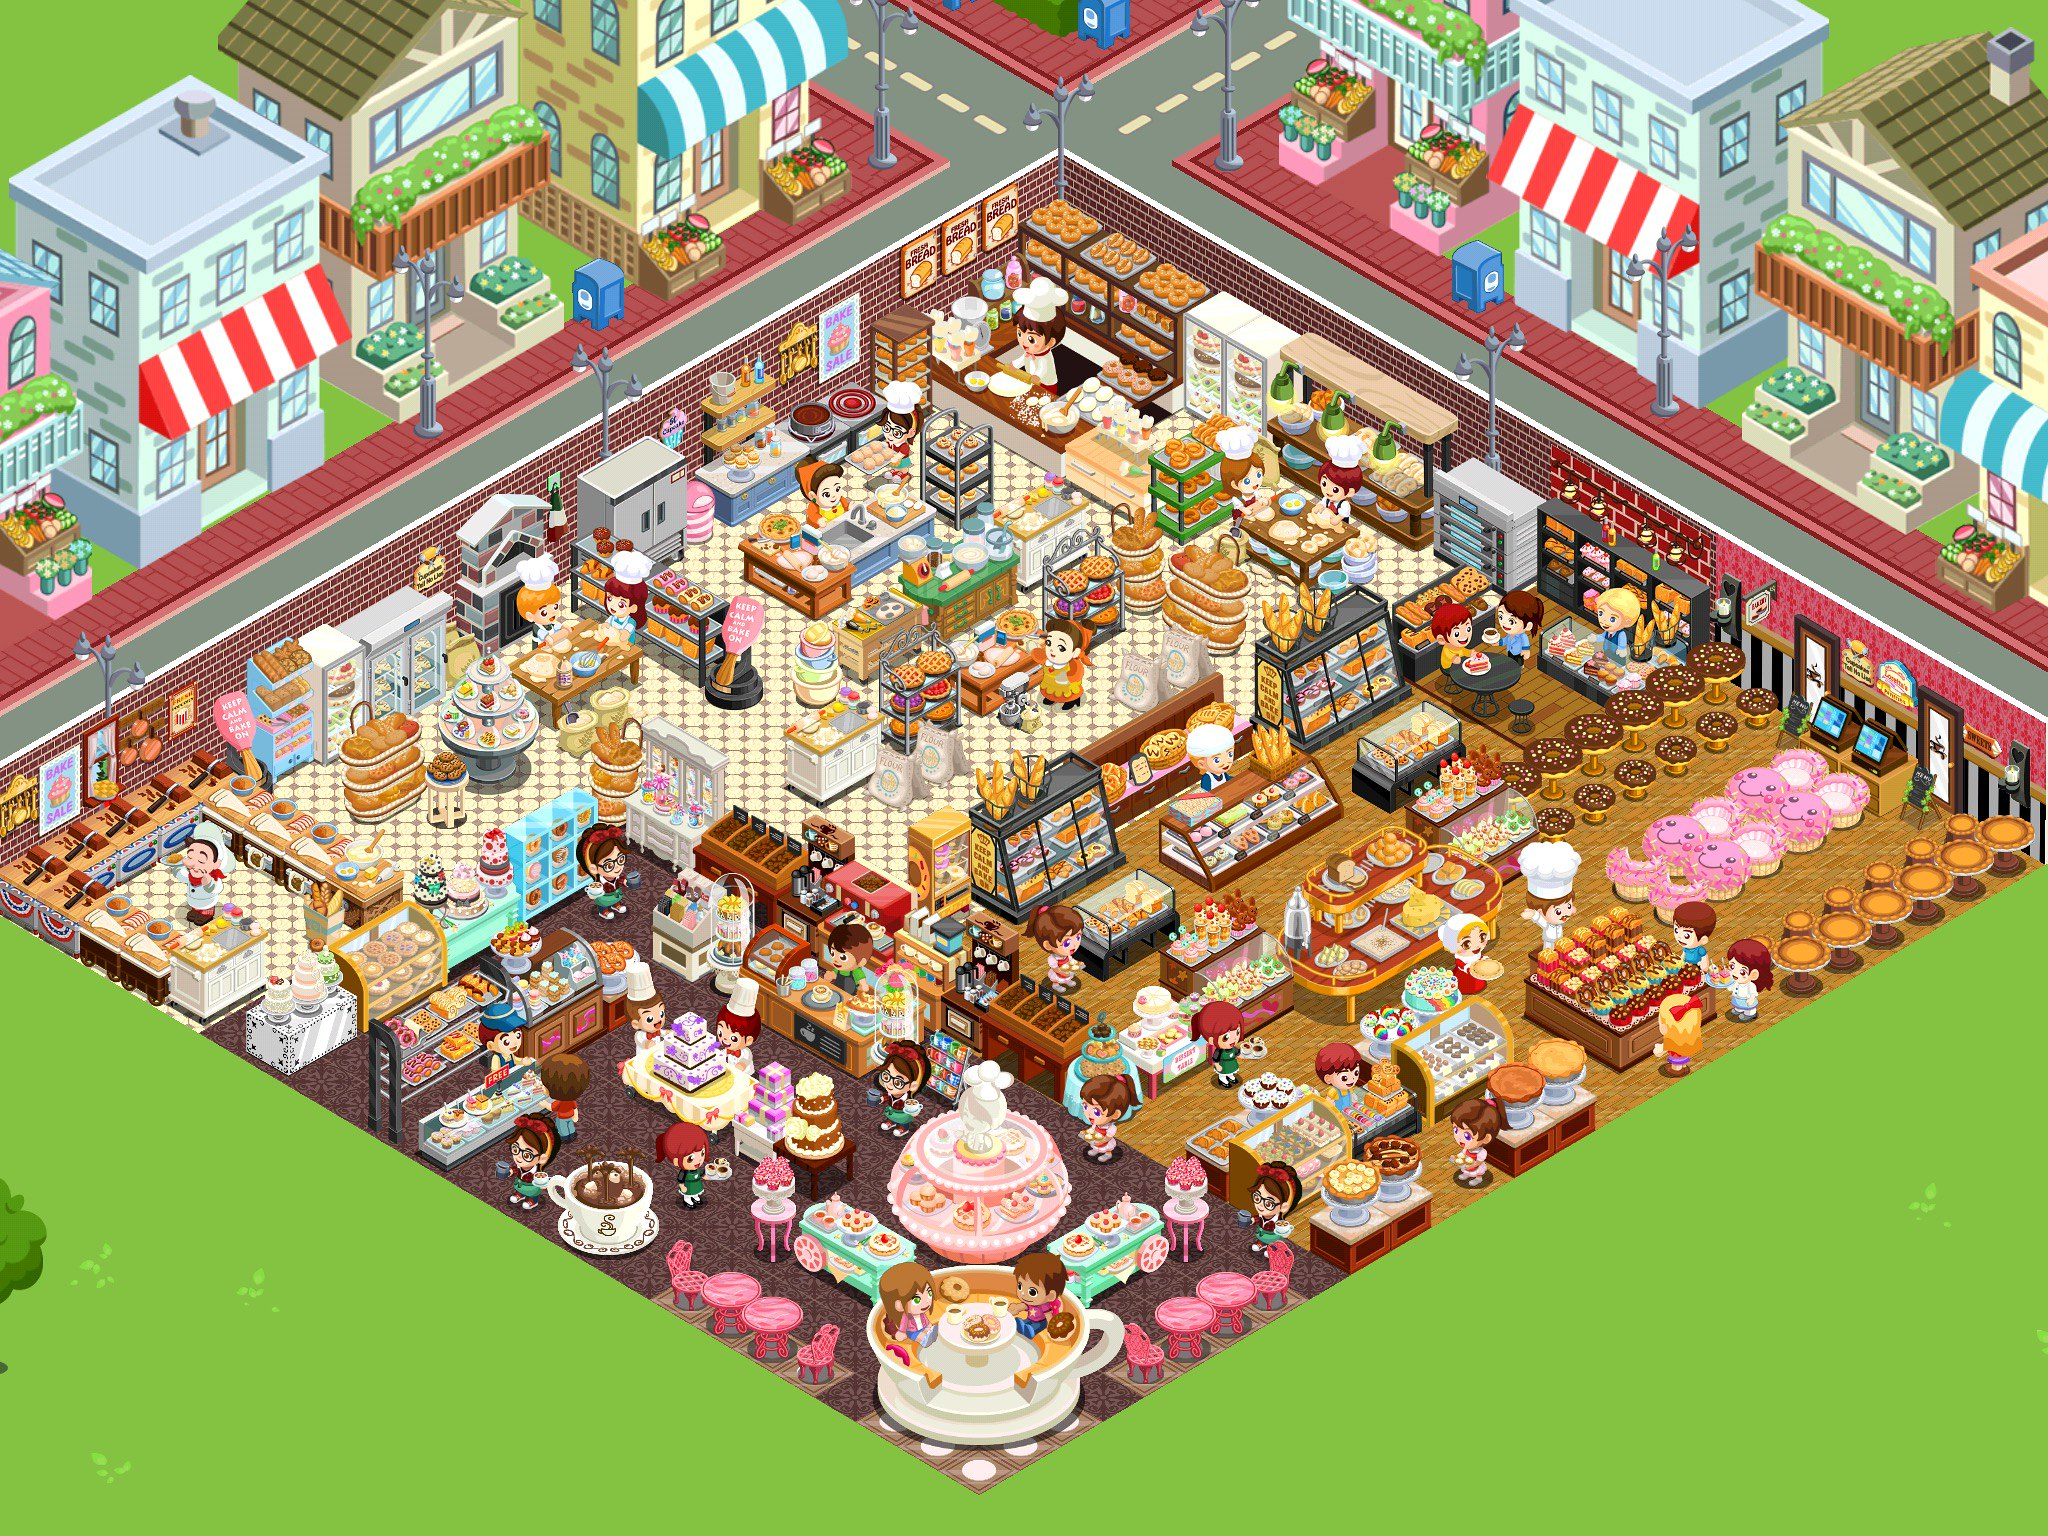 show off your bakery - thread 1 - page 171